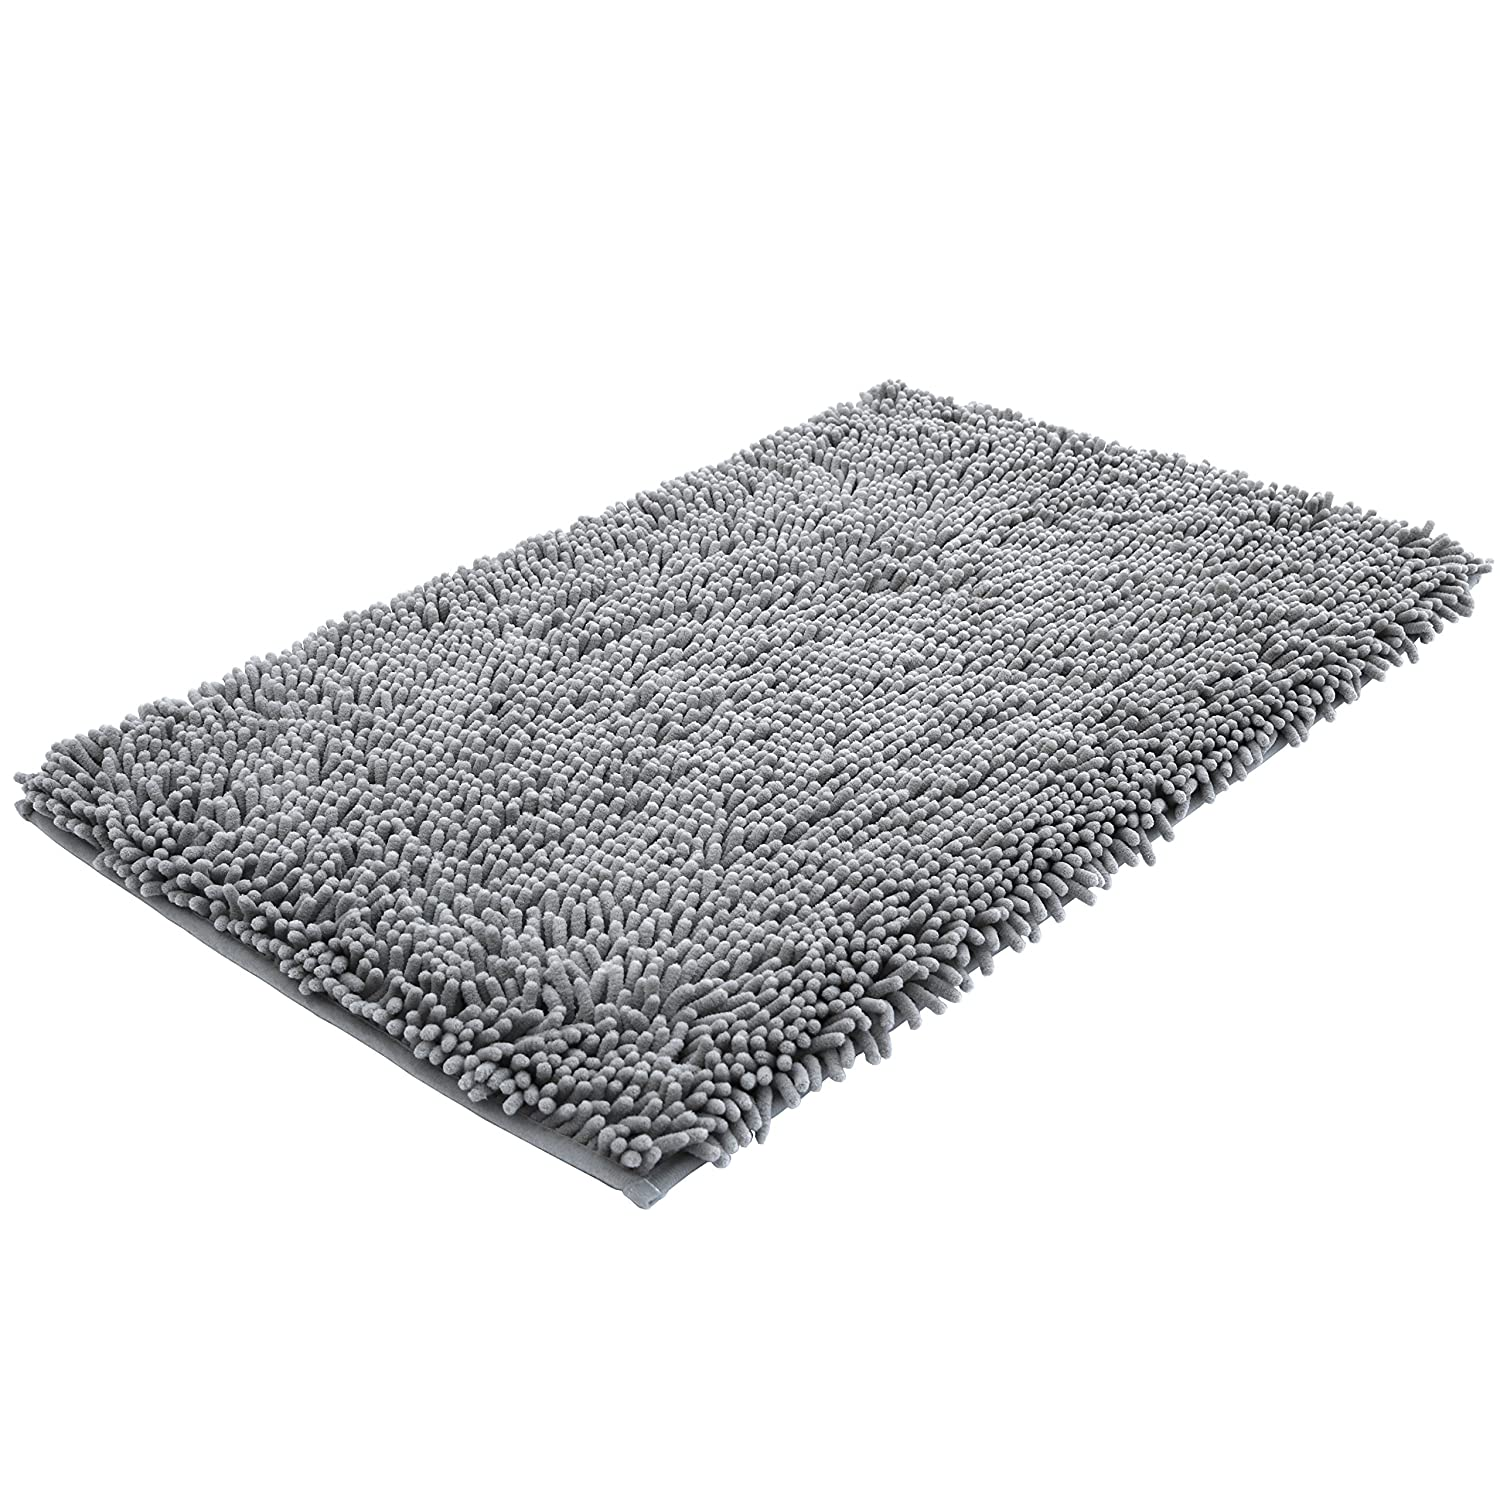 Shop Amazoncom Bath Rugs - Bathroom rug runner 24x60 for bathroom decor ideas